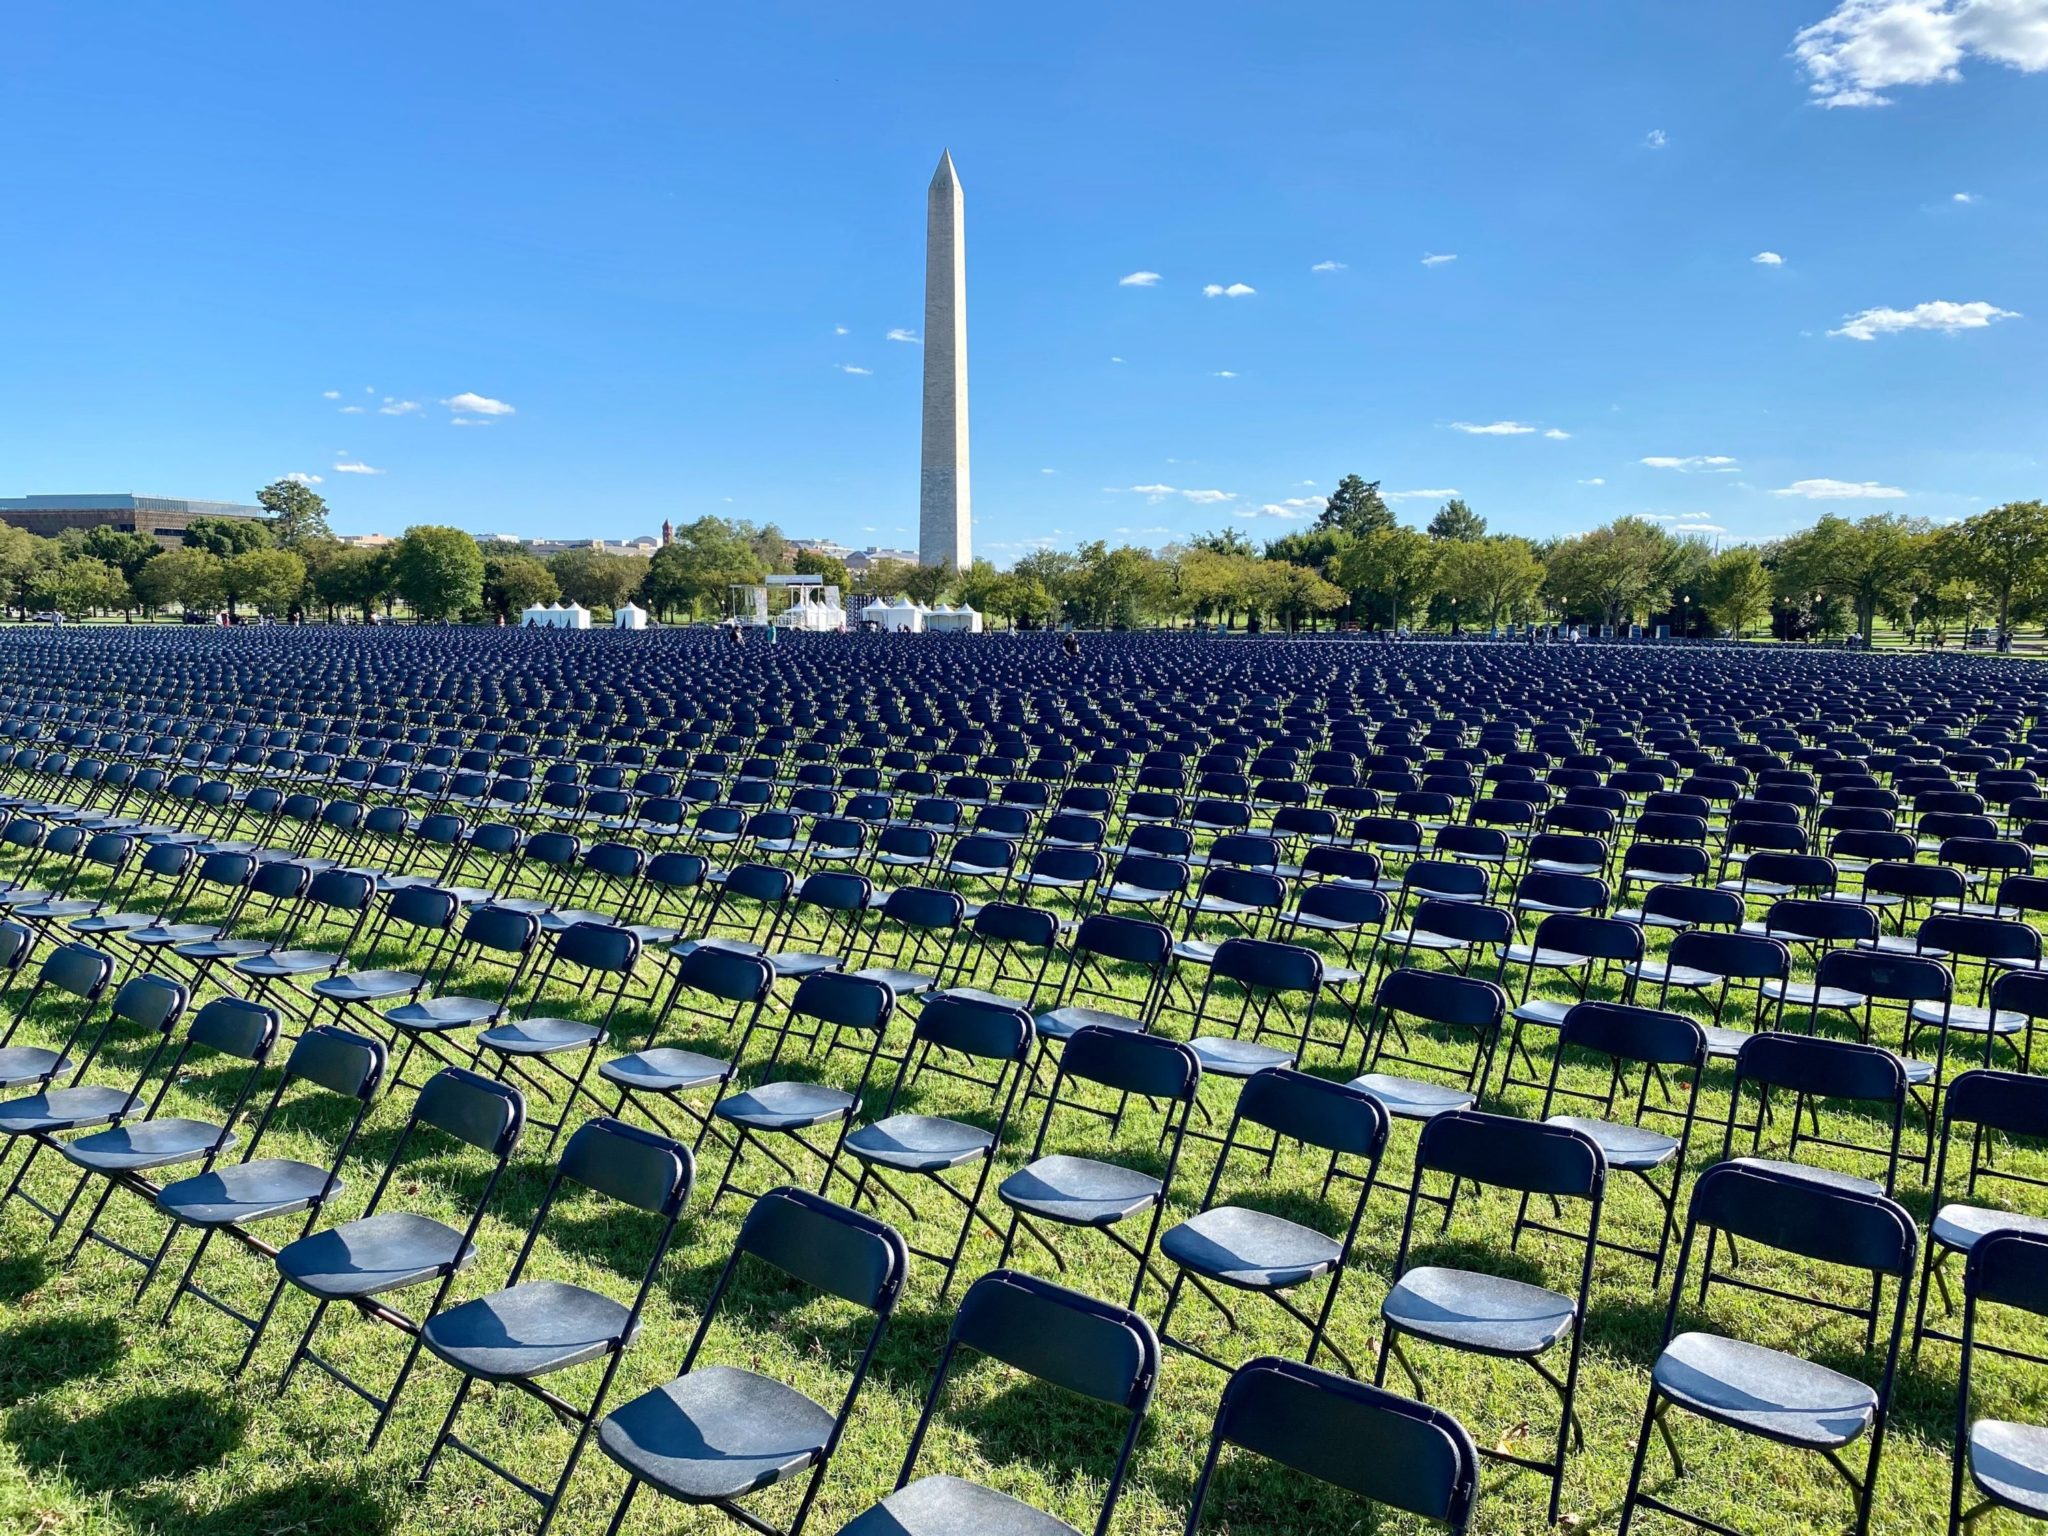 Look at These 20,000 Empty Chairs on the Mall—Then Imagine the 200,000 People We've Lost